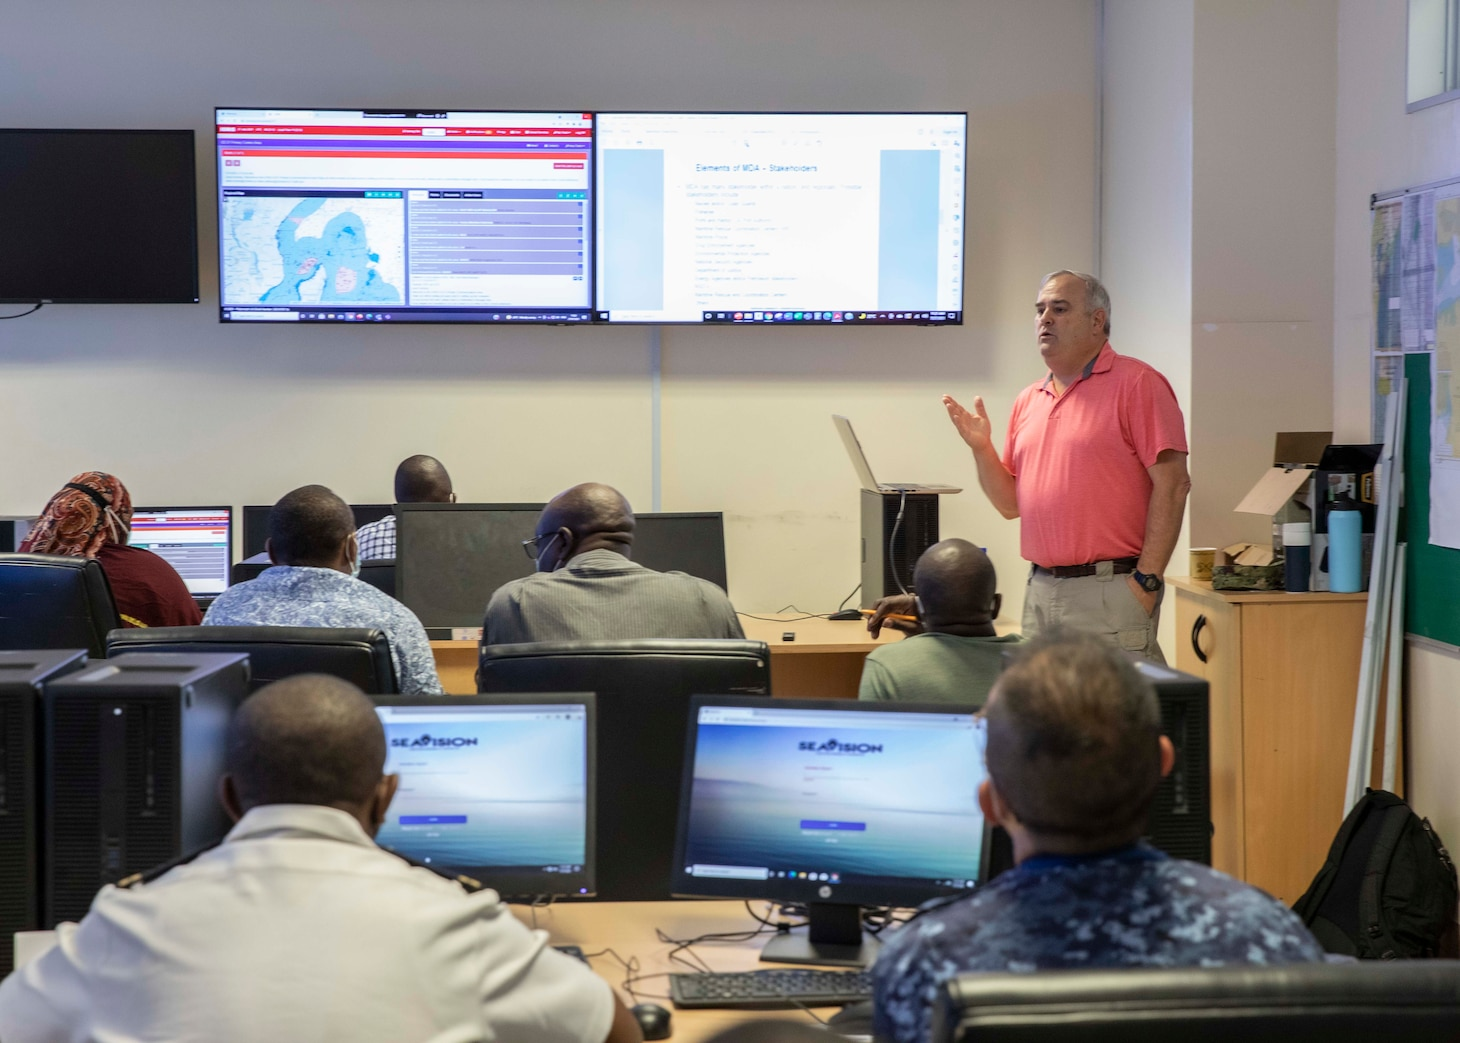 (July 27, 2021)  David Rollo, U.S. Naval Forces Europe-Africa maritime domain awareness program manager, provides the joint operations center personnel with a brief on SeaVision during exercise Cutlass Express 2021, in Mombasa, Kenya, July 27, 2021. Cutlass Express is designed to improve regional cooperation, maritime domain awareness and information sharing practices to increase capabilities between the U.S., East African and Western Indian Ocean nations to counter illicit maritime activity.